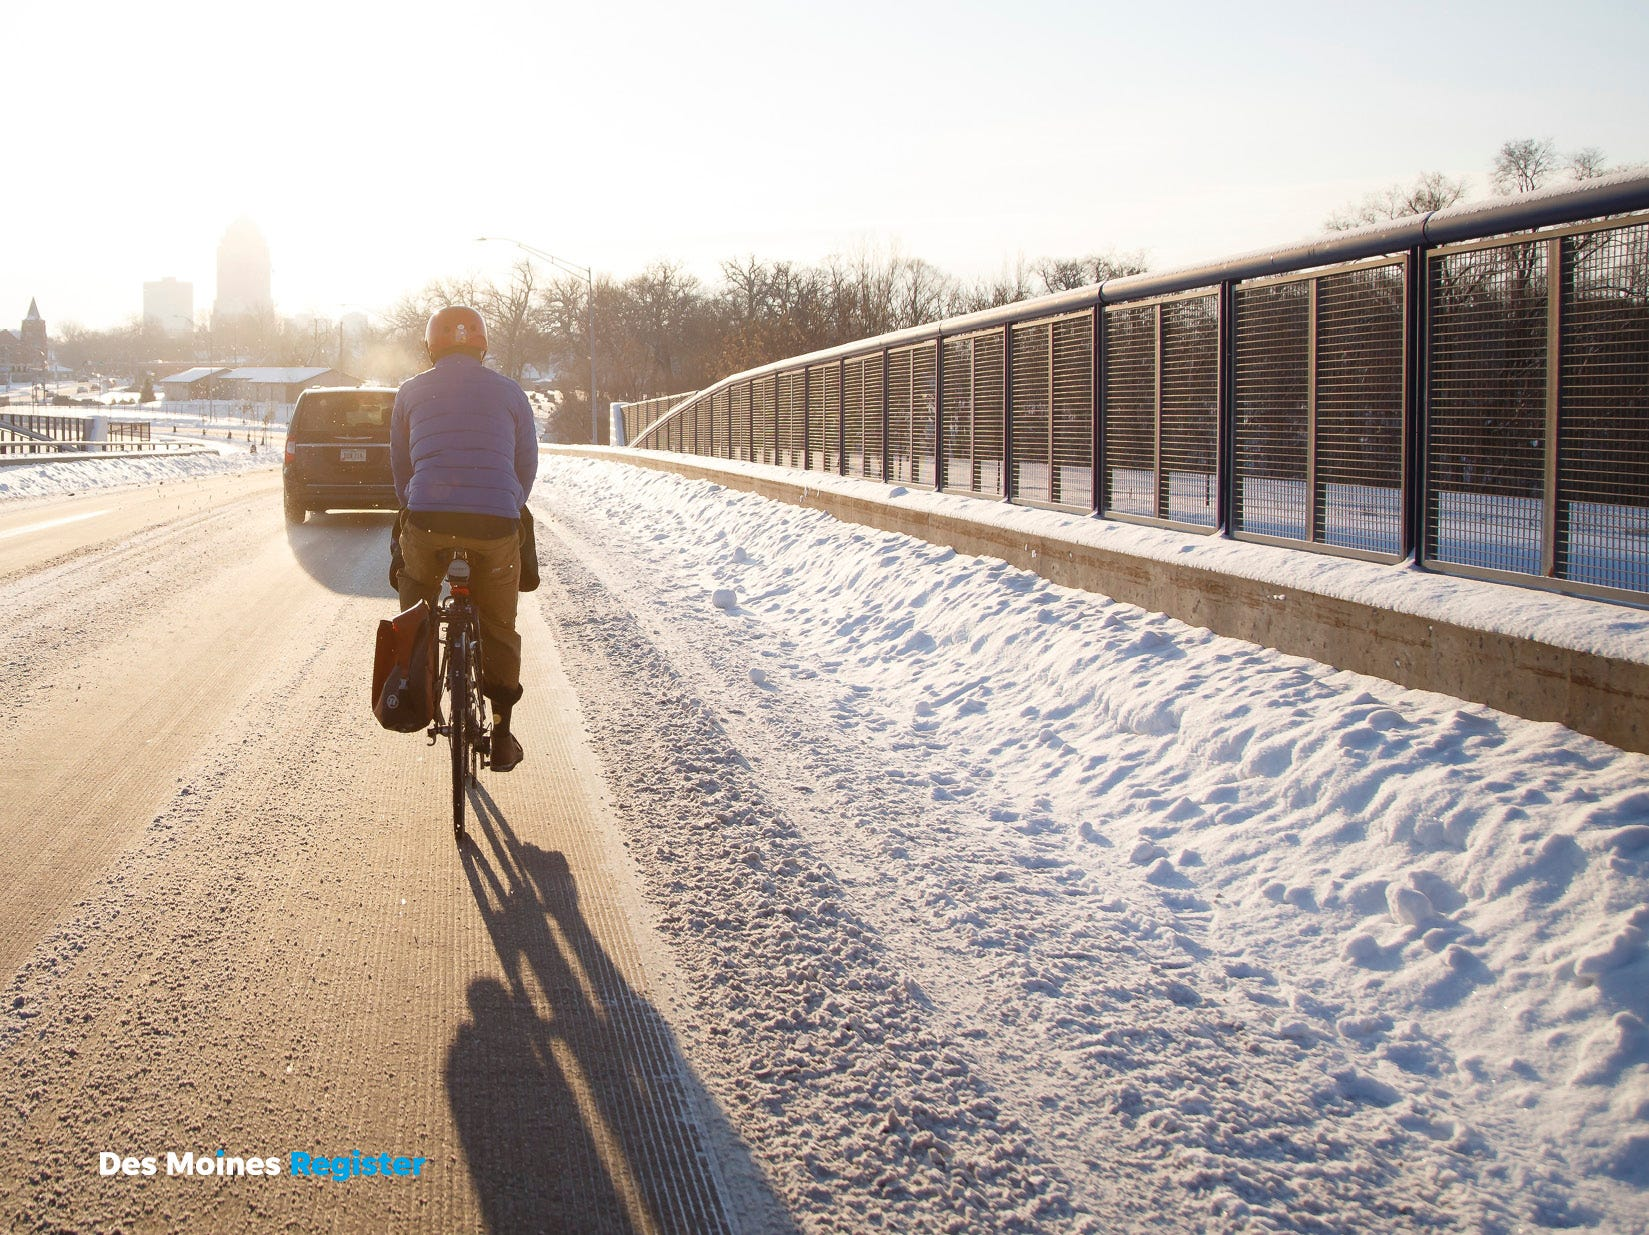 "<b>February: </b> A cyclist rides along Cottage Grove Avenue in Des Moines. The Register's 2019 photo calendar is available for $18 at <a href=""https://shopdmregister.com/collections/photo-gifts/products/2019-des-moines-register-photo-calendar?utm_source=desmoinesregister&utm_medium=link&utm_campaign=launch_gallery"" target=""_blank"">ShopDMRegister.com. </a>"